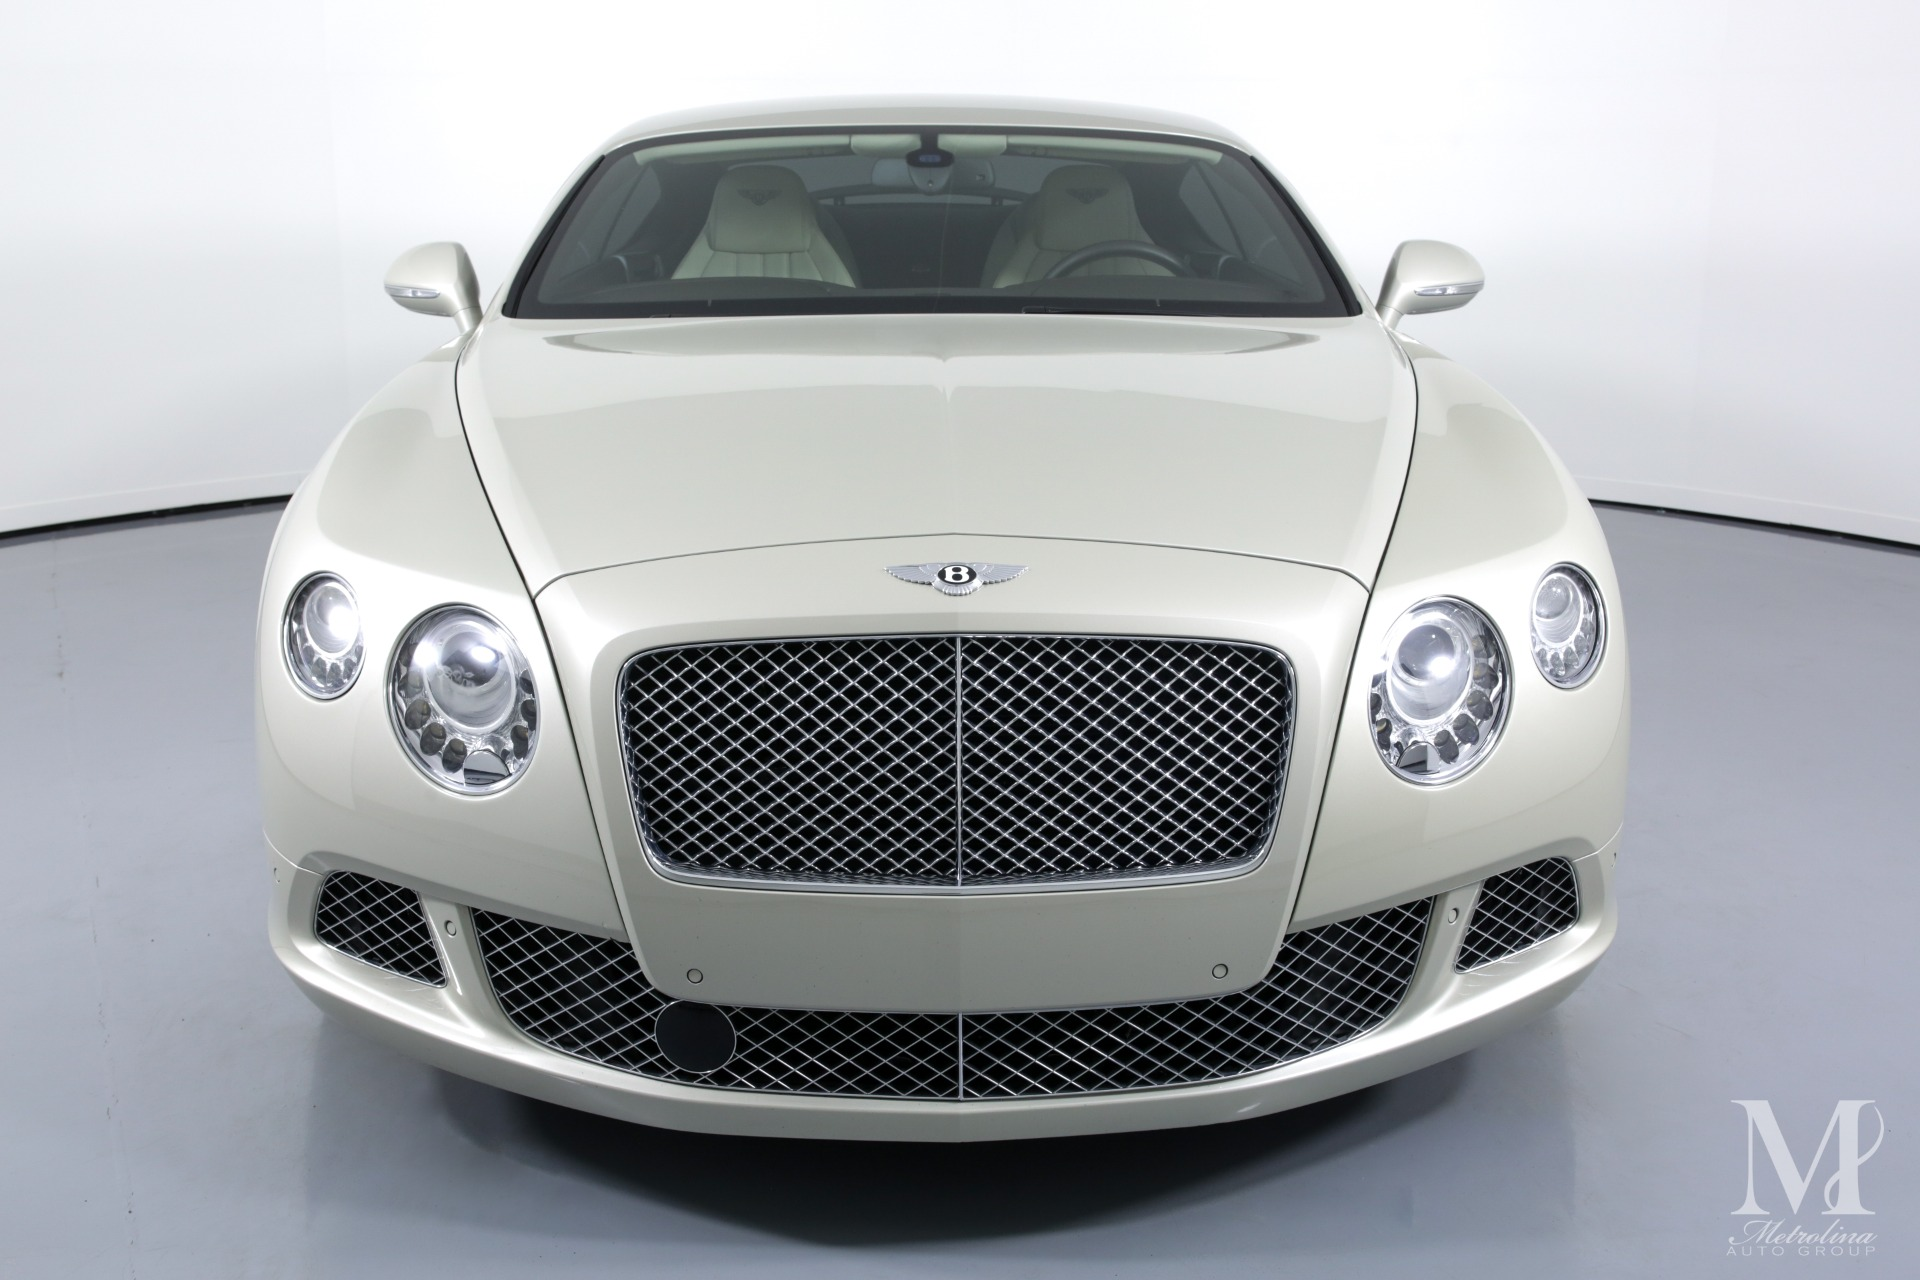 Used 2012 Bentley Continental GT for sale $74,996 at Metrolina Auto Group in Charlotte NC 28217 - 3